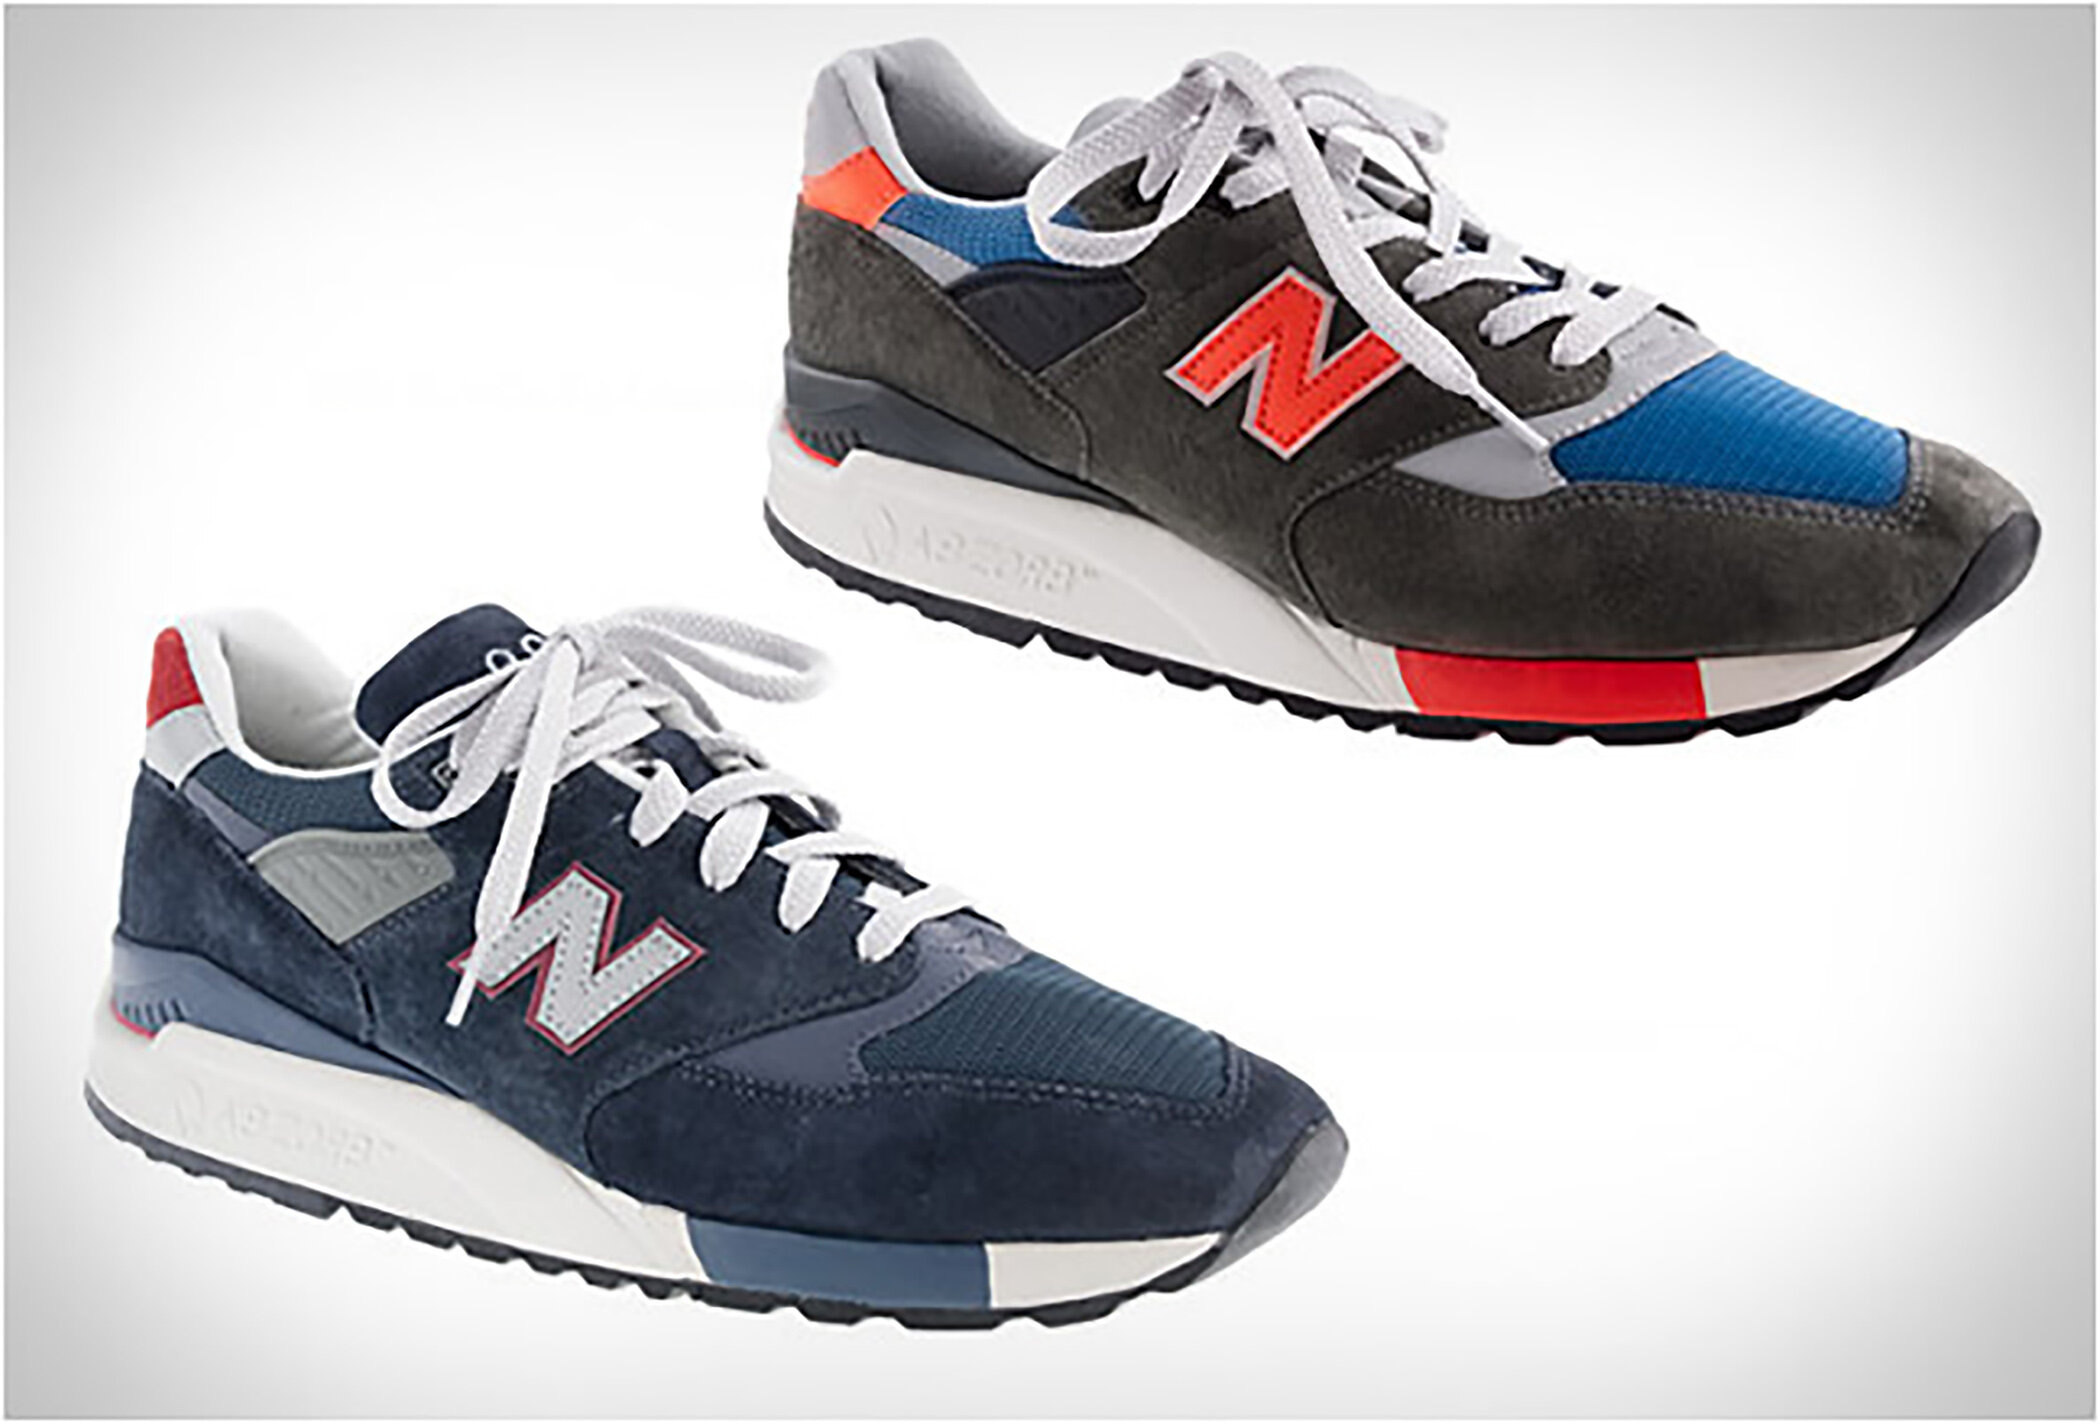 OG NB for J Crew 998 - Special Make-Ups